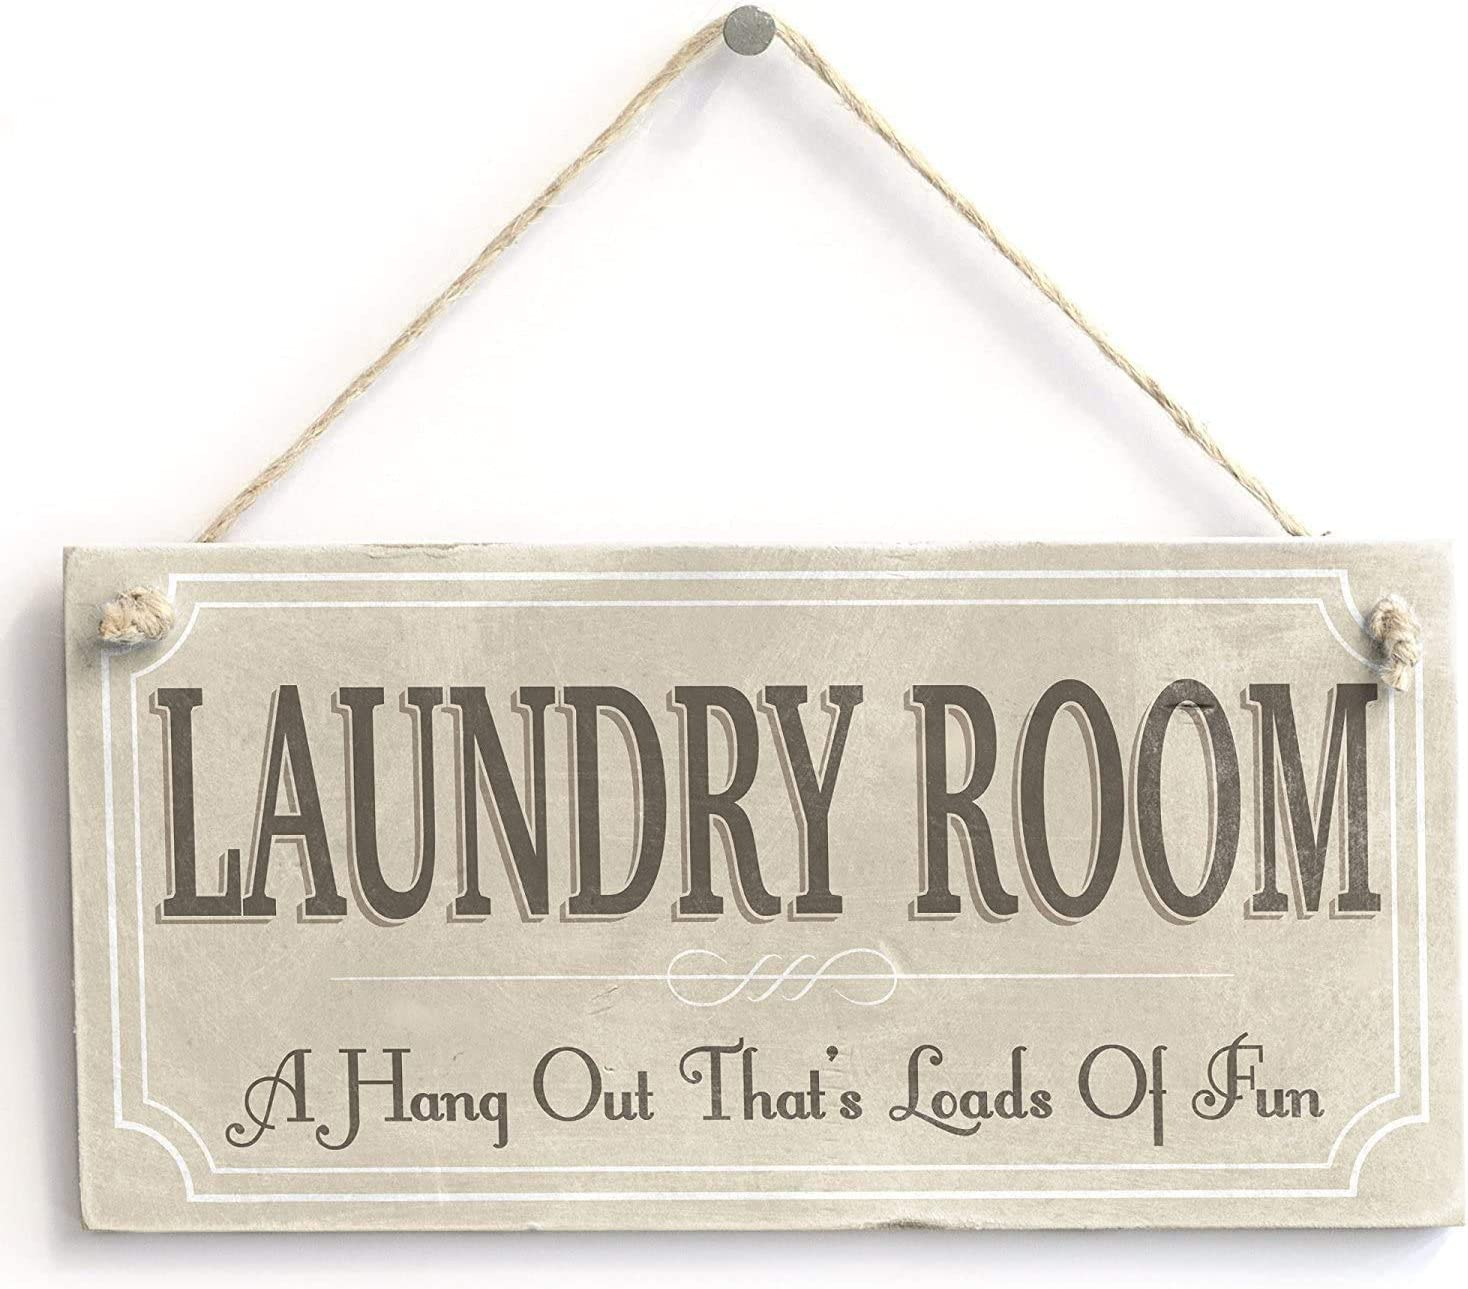 AJHERO Funny Retro Wall Décor Hanging Wall Sign for Home,A Hangout Thats Loads of Fun,5X10 Laundry Room Wall Decor Sign Wall Art Plaque Sign-11